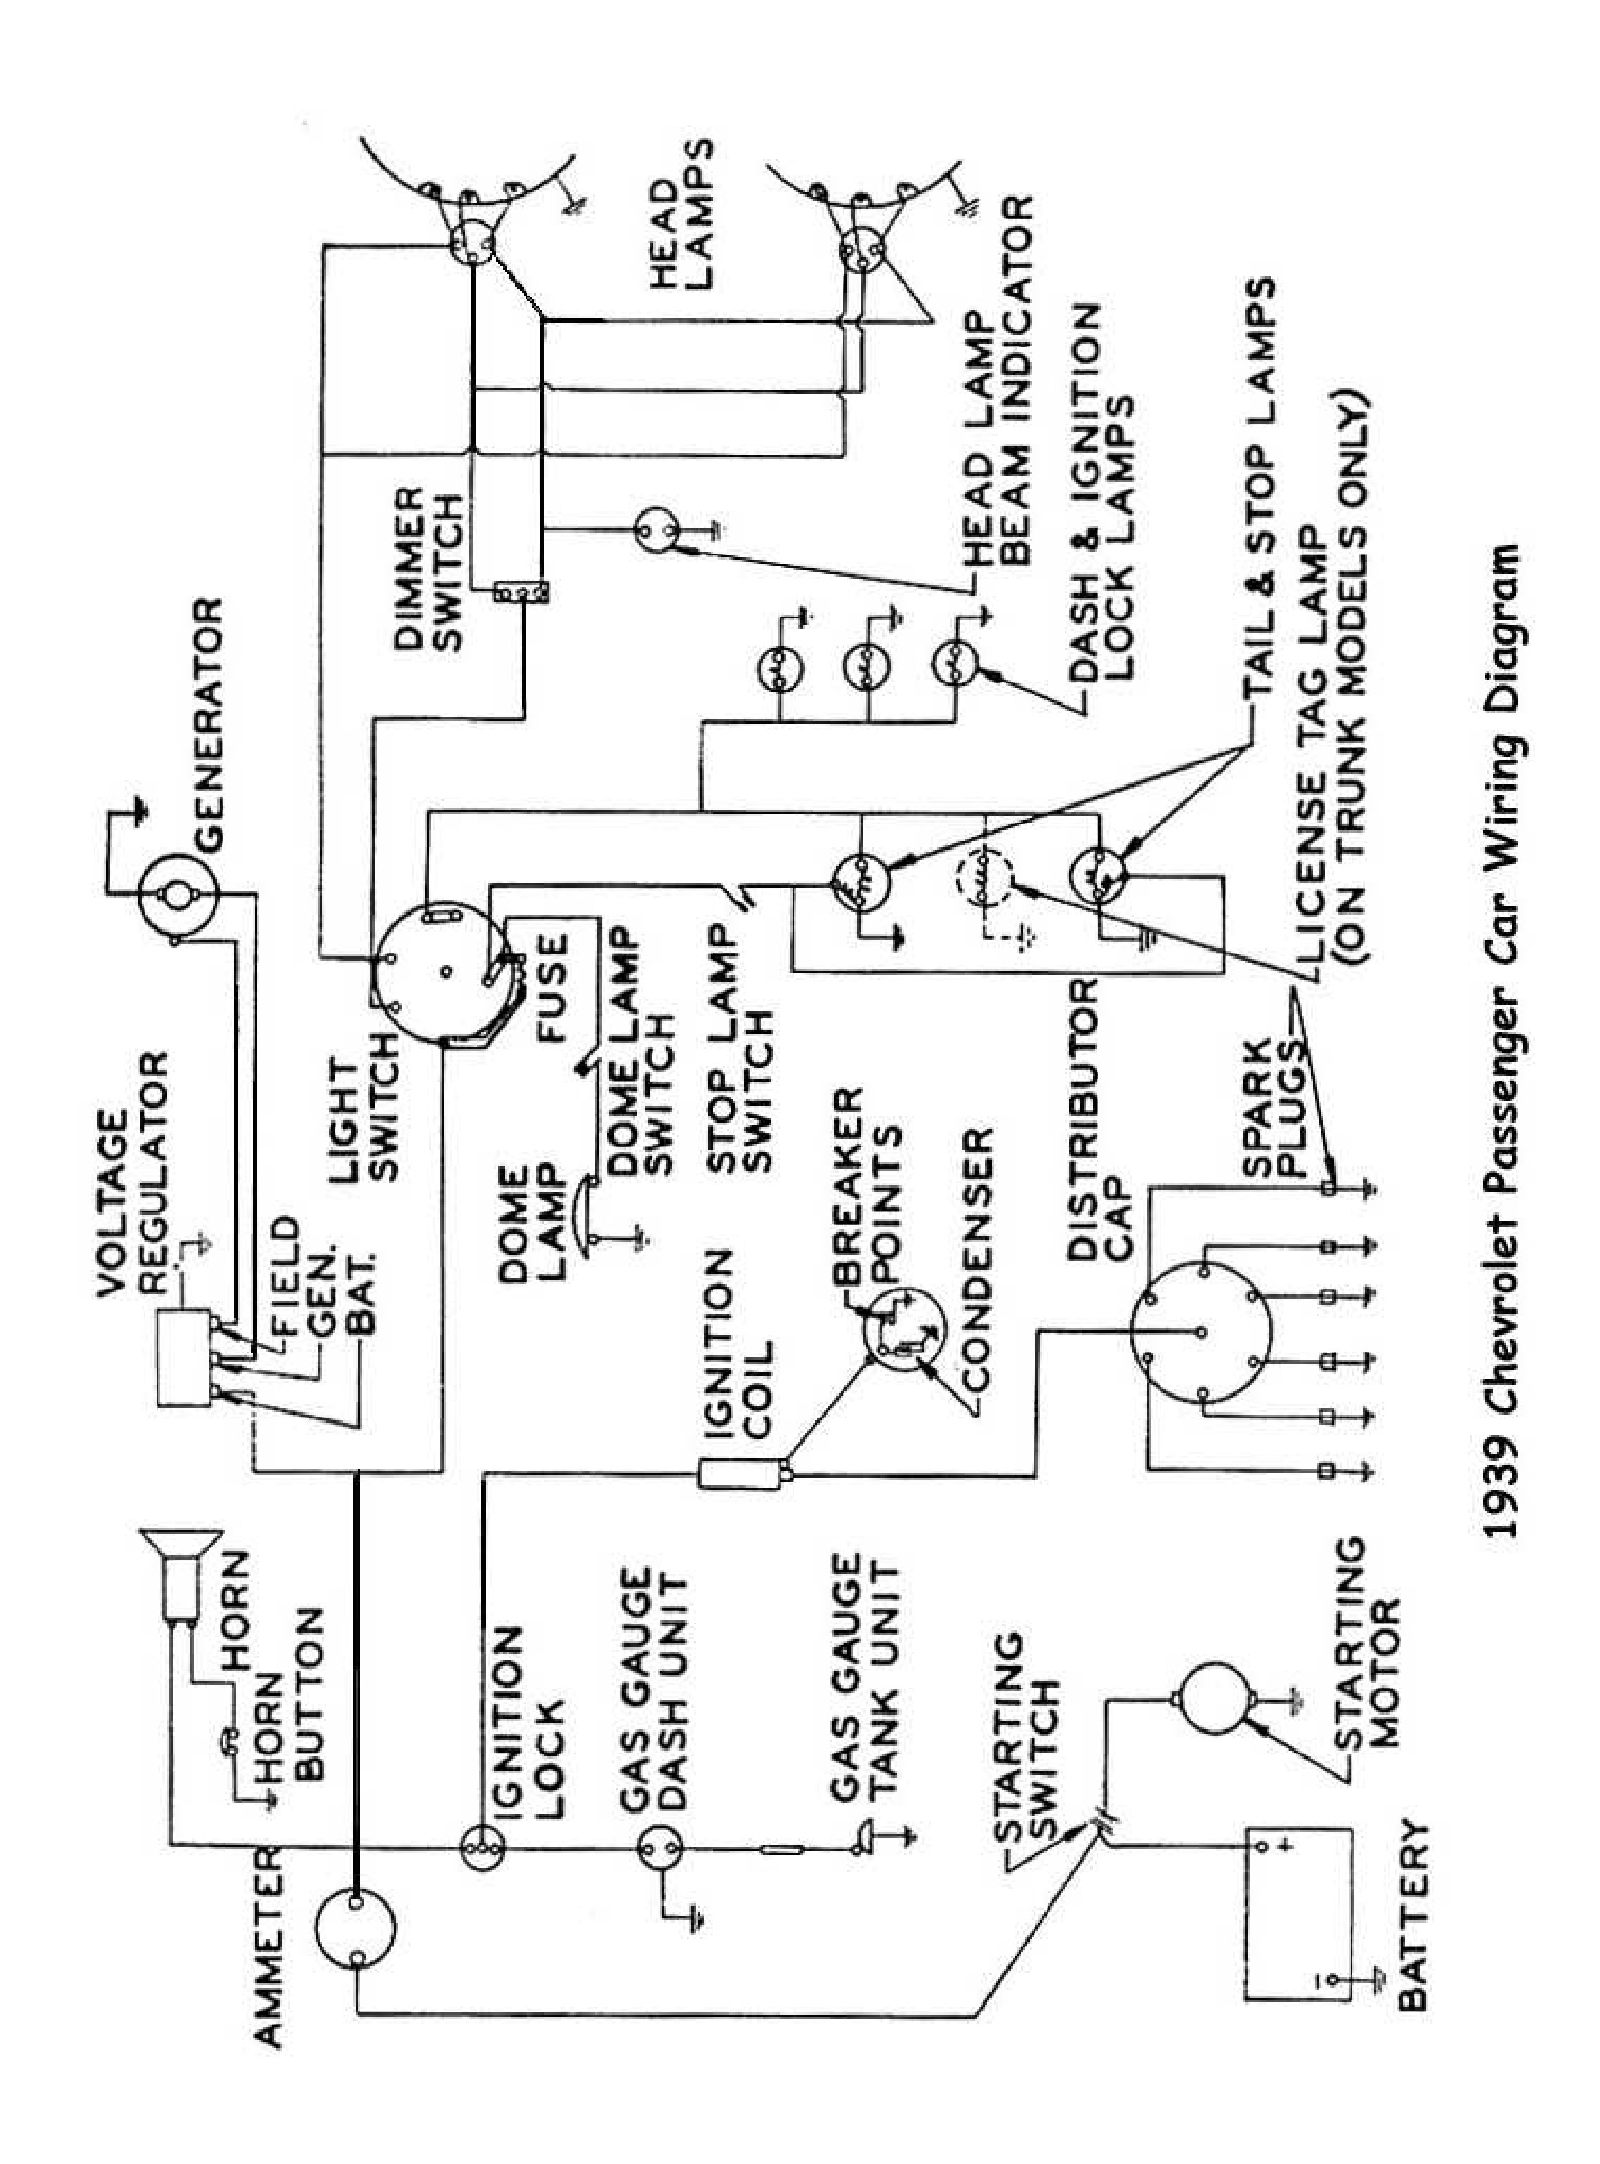 39car car ignition wiring diagram 2003 club car ignition wiring diagram  at gsmportal.co